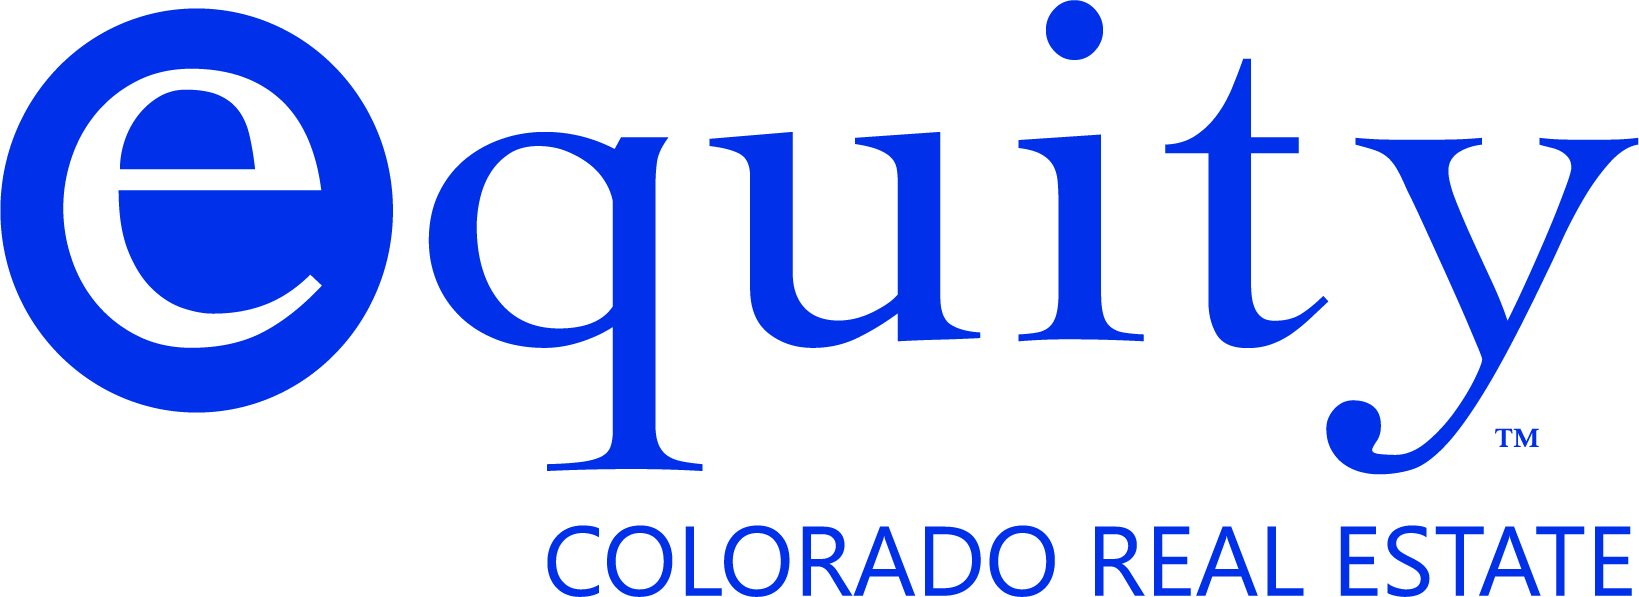 Jill Speth Real Estate with Equity Colorado logo